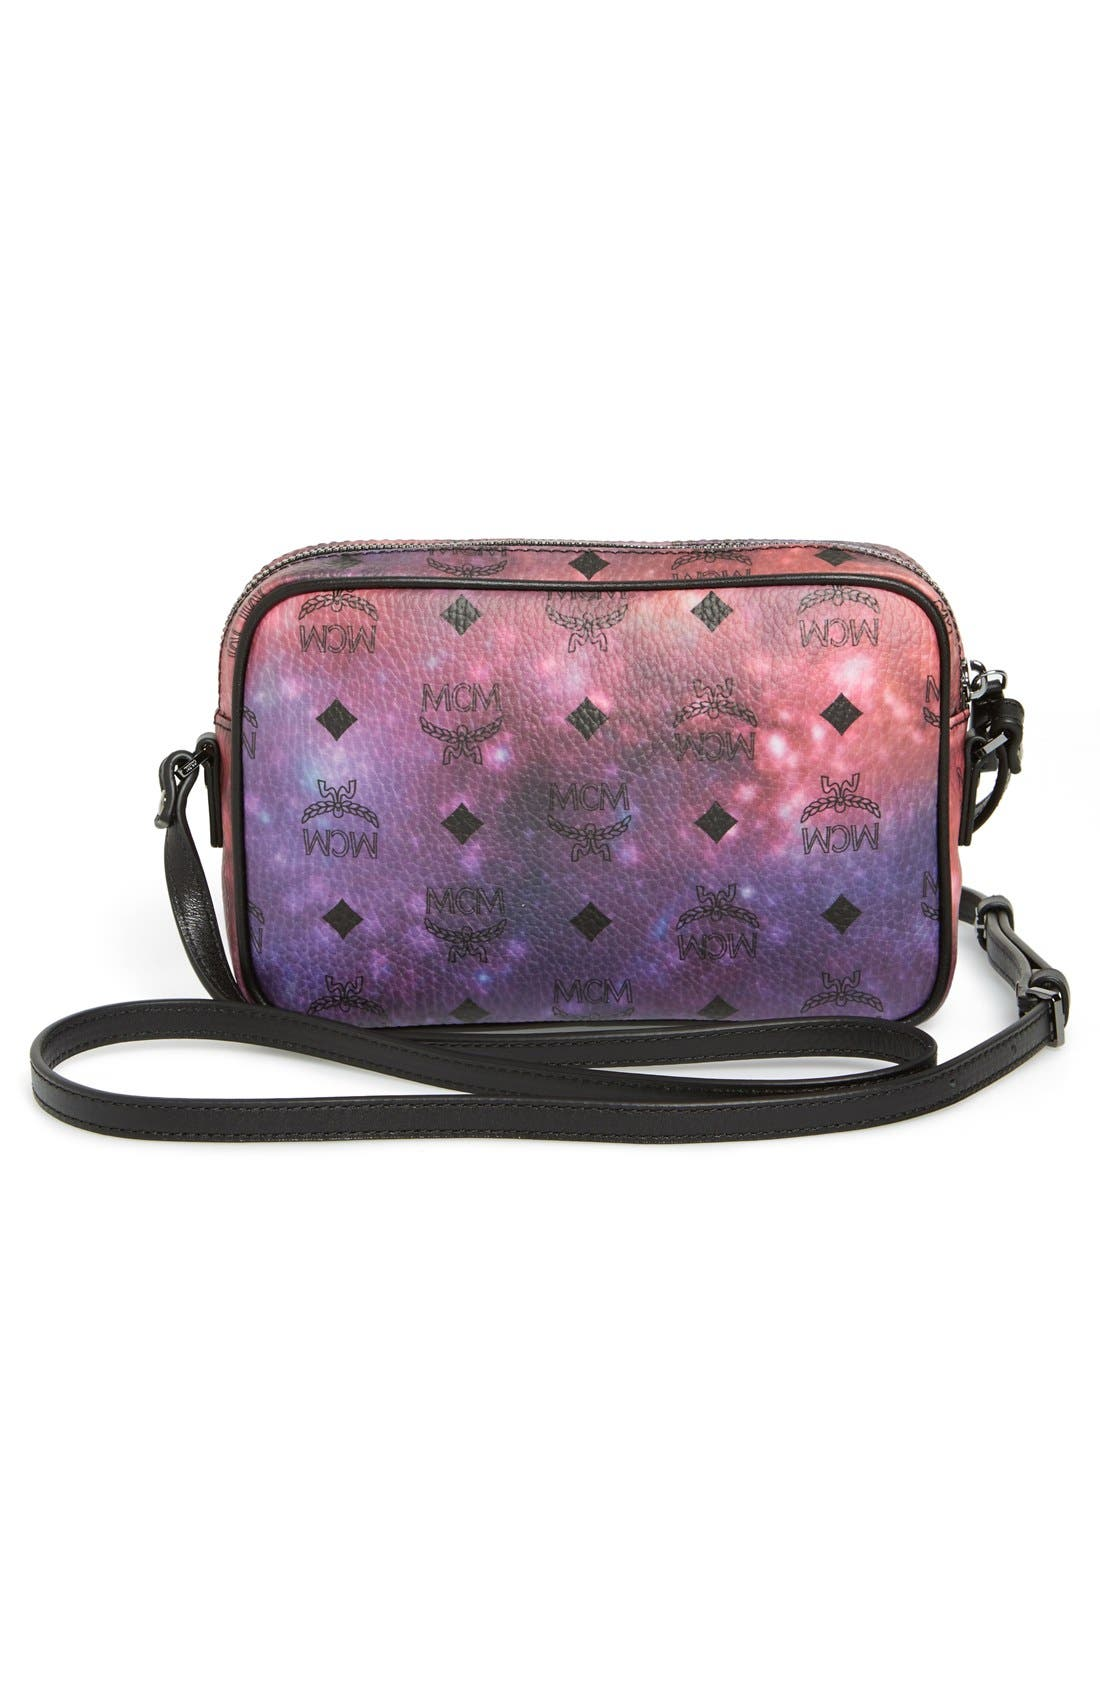 Alternate Image 3  - MCM 'Galaxy Series' Crossbody Bag